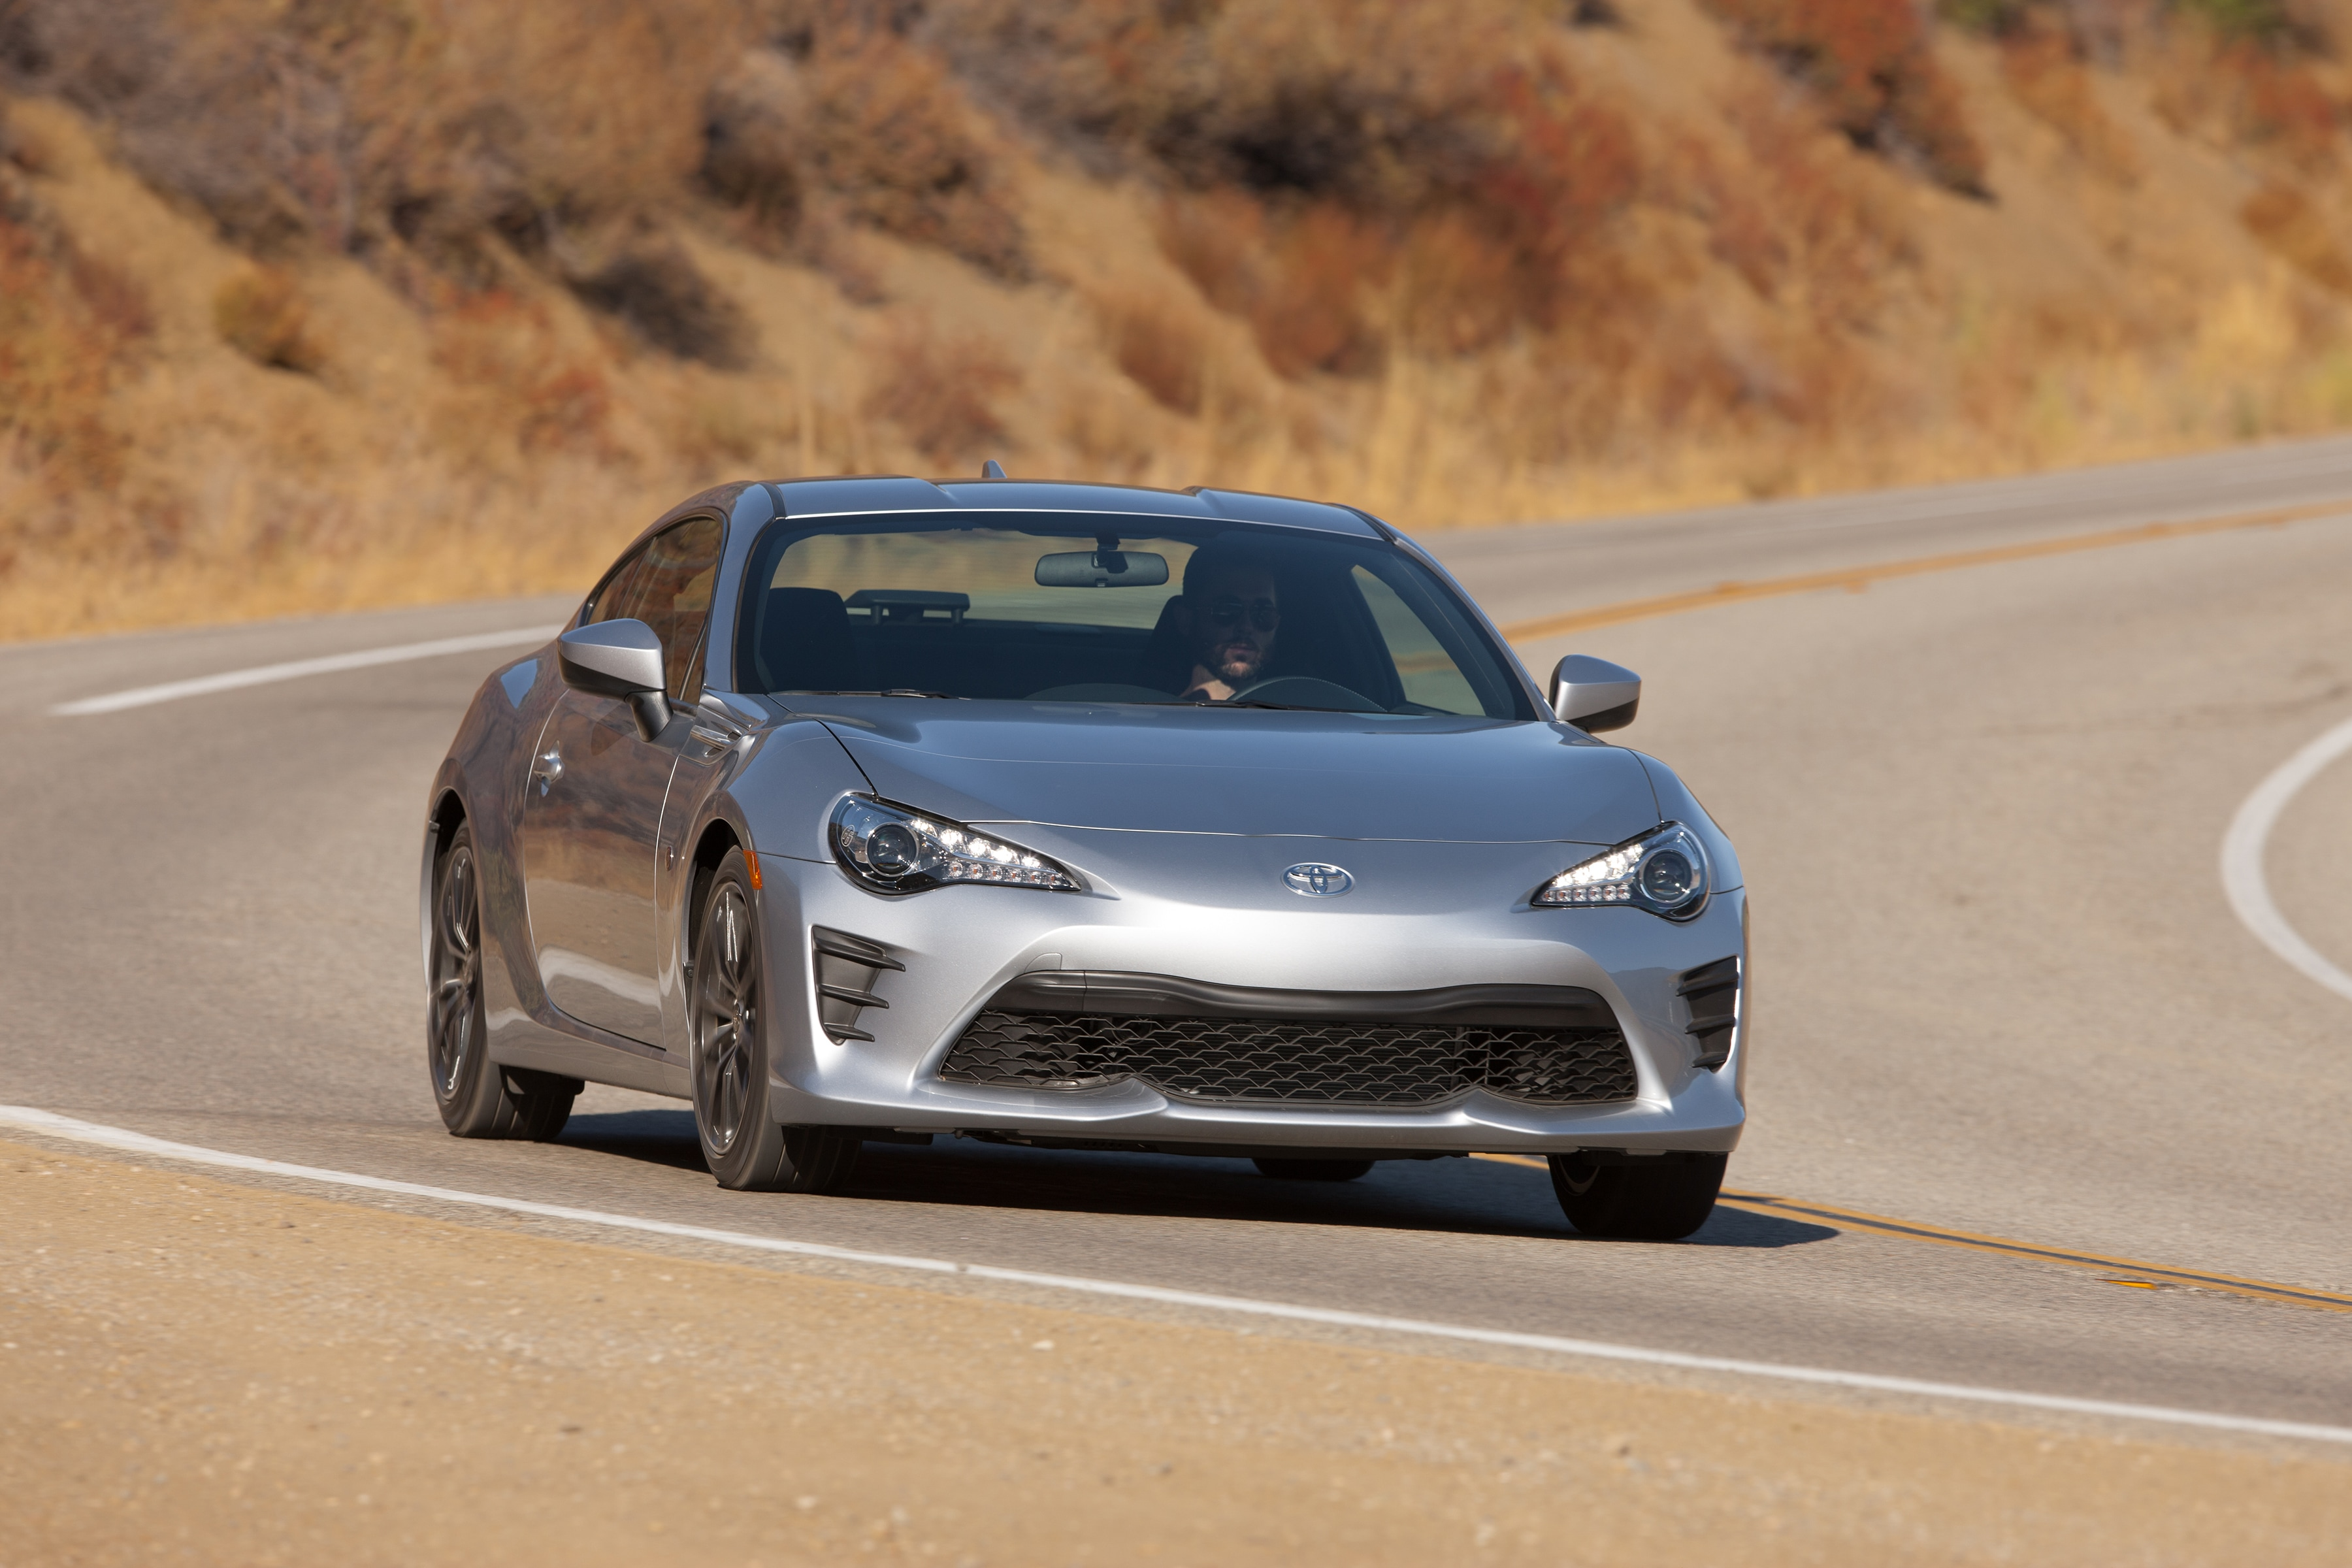 2018 Toyota 86 for Sale in Rogers AR